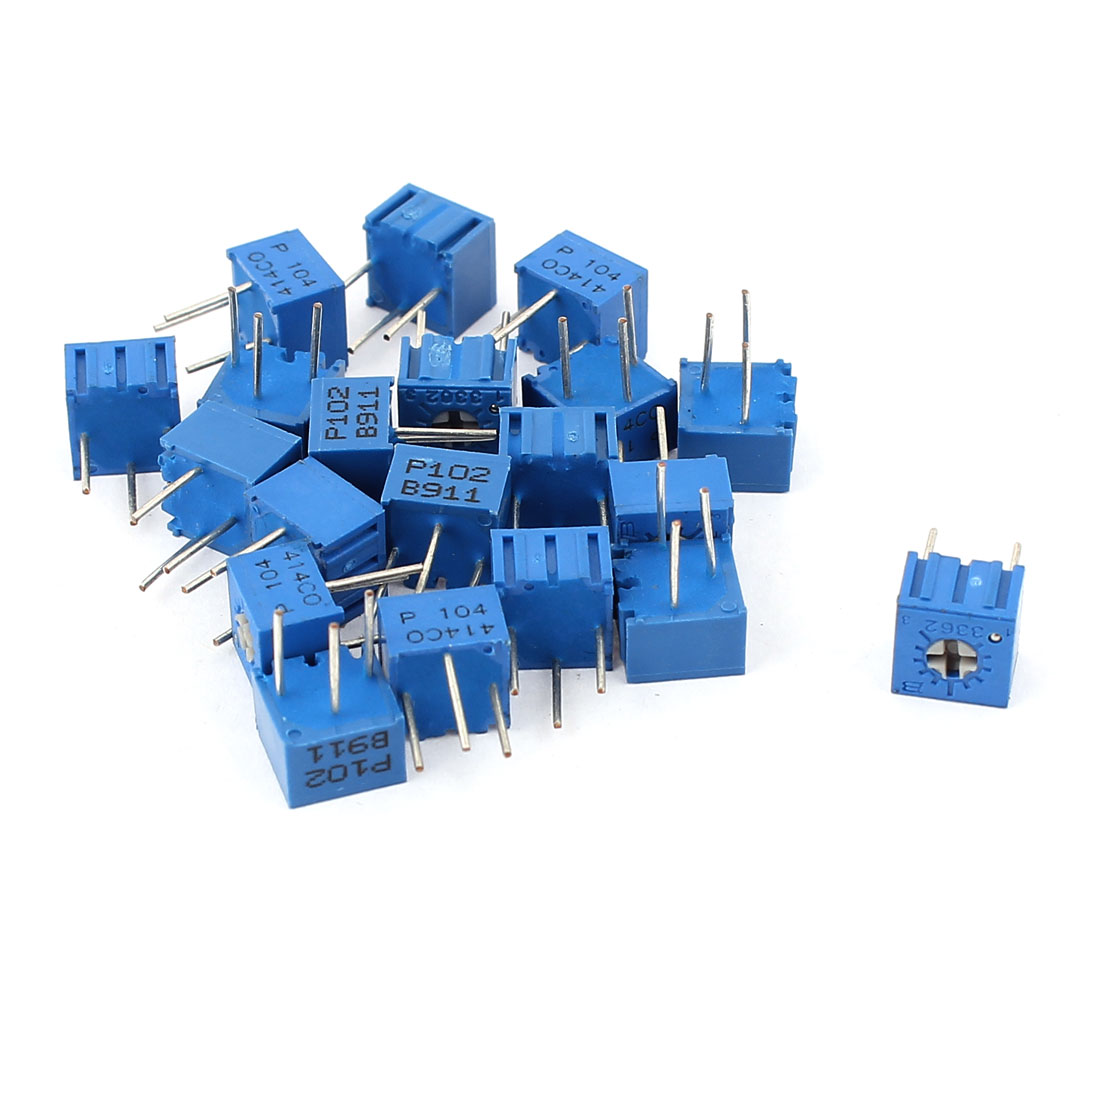 20Pcs Potentiometer Trimmer Variable Resistor 3362P-102 3362P-104